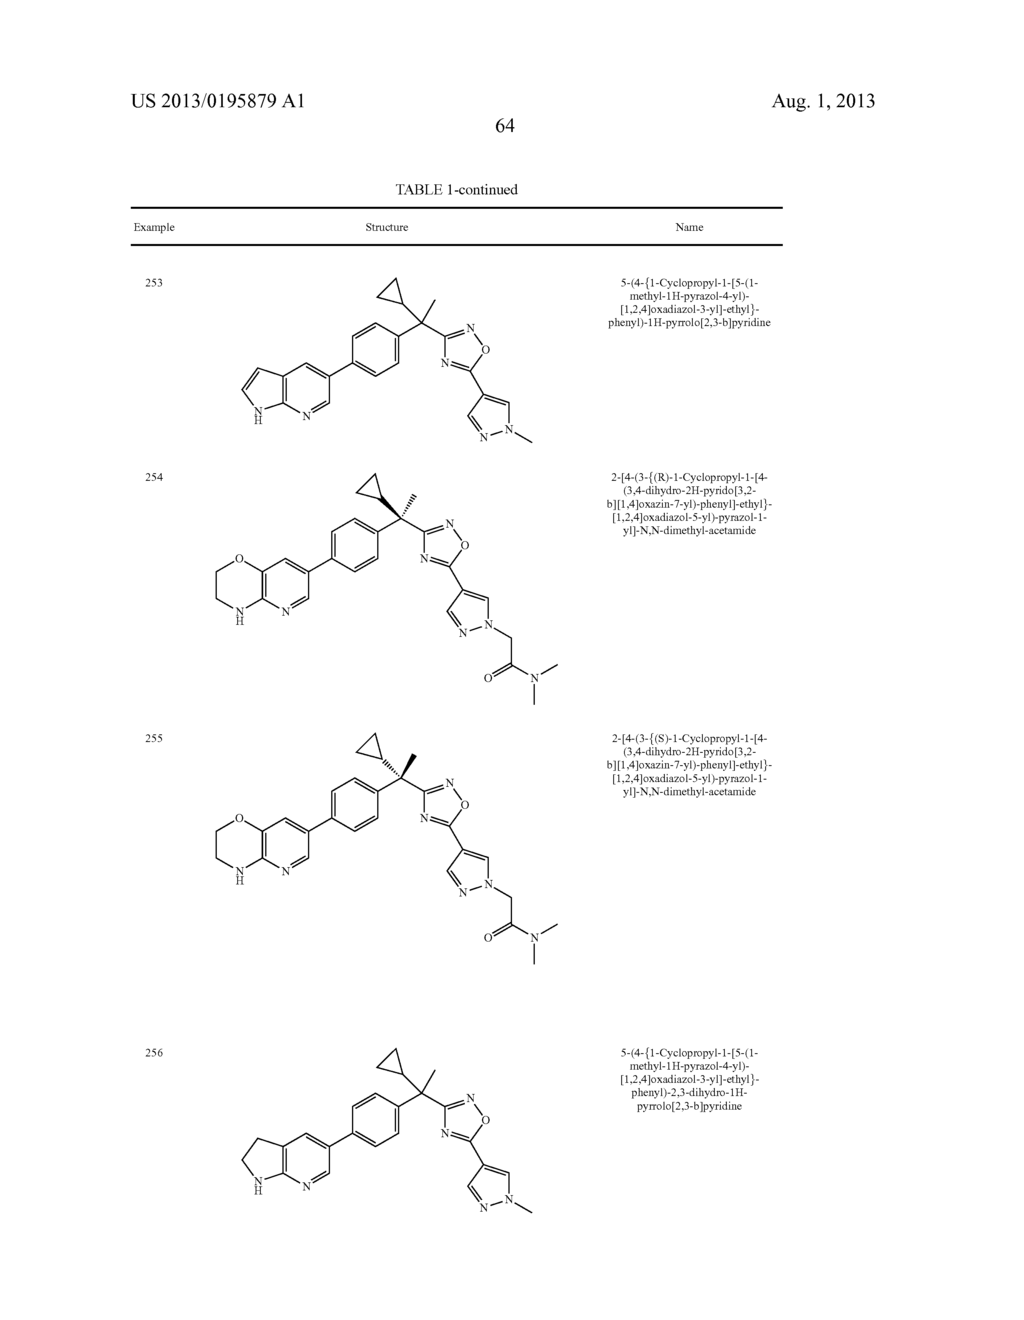 OXADIAZOLE INHIBITORS OF LEUKOTRIENE PRODUCTION FOR COMBINATION THERAPY - diagram, schematic, and image 66